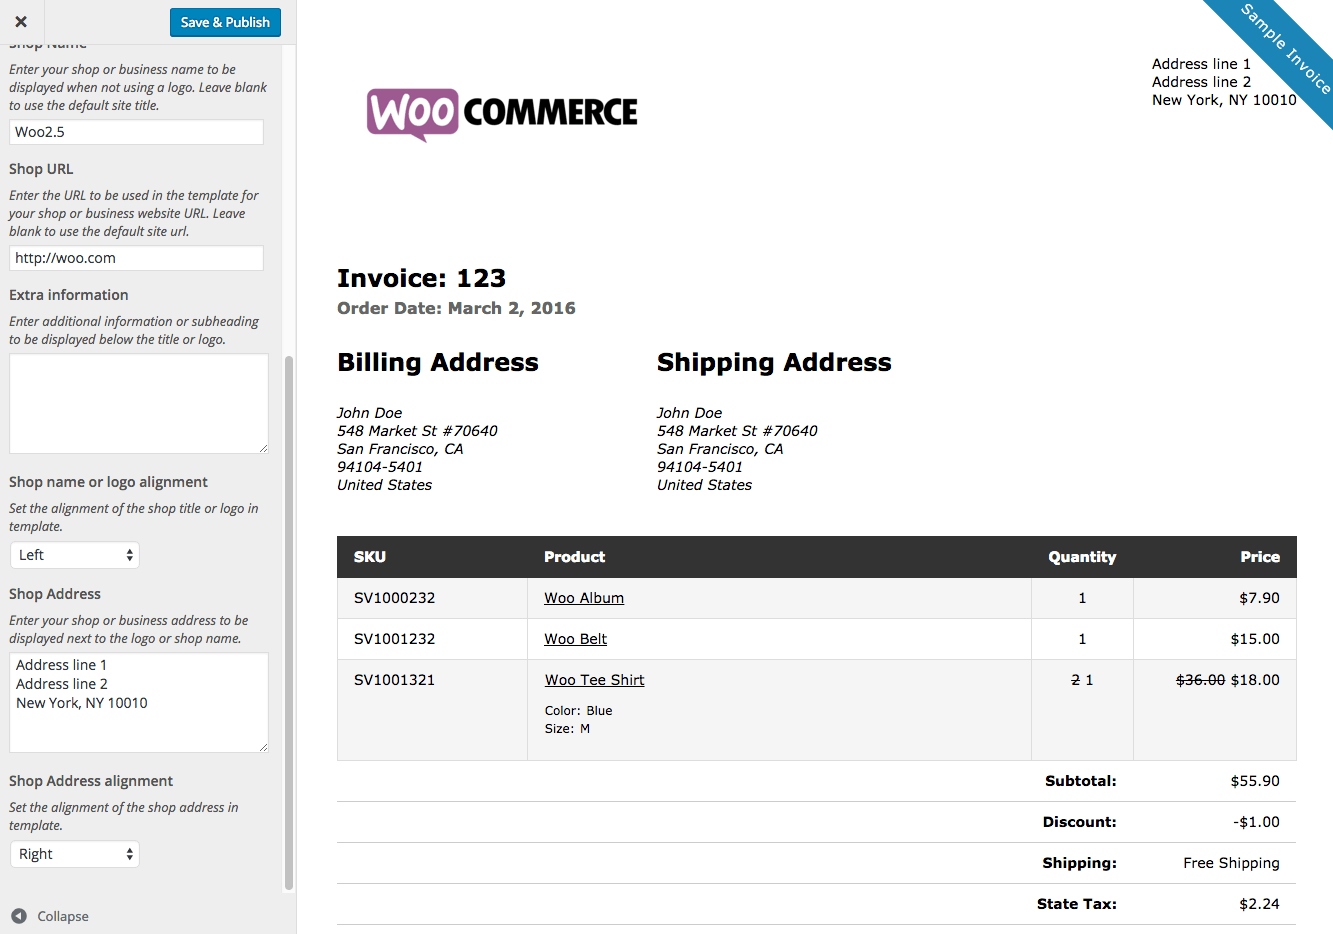 Darkfaderus  Fascinating Woocommerce Print Invoices Amp Packing Lists  Woocommerce Docs With Marvelous Woocommerce Print Invoices  Packing Lists Customizer With Divine Donation Receipts Templates Also Rent Receipt Templates In Addition Fake Receipts Generator And Cake Receipt As Well As Item Receipt Additionally Epson Tmtv Receipt Printer From Docswoocommercecom With Darkfaderus  Marvelous Woocommerce Print Invoices Amp Packing Lists  Woocommerce Docs With Divine Woocommerce Print Invoices  Packing Lists Customizer And Fascinating Donation Receipts Templates Also Rent Receipt Templates In Addition Fake Receipts Generator From Docswoocommercecom